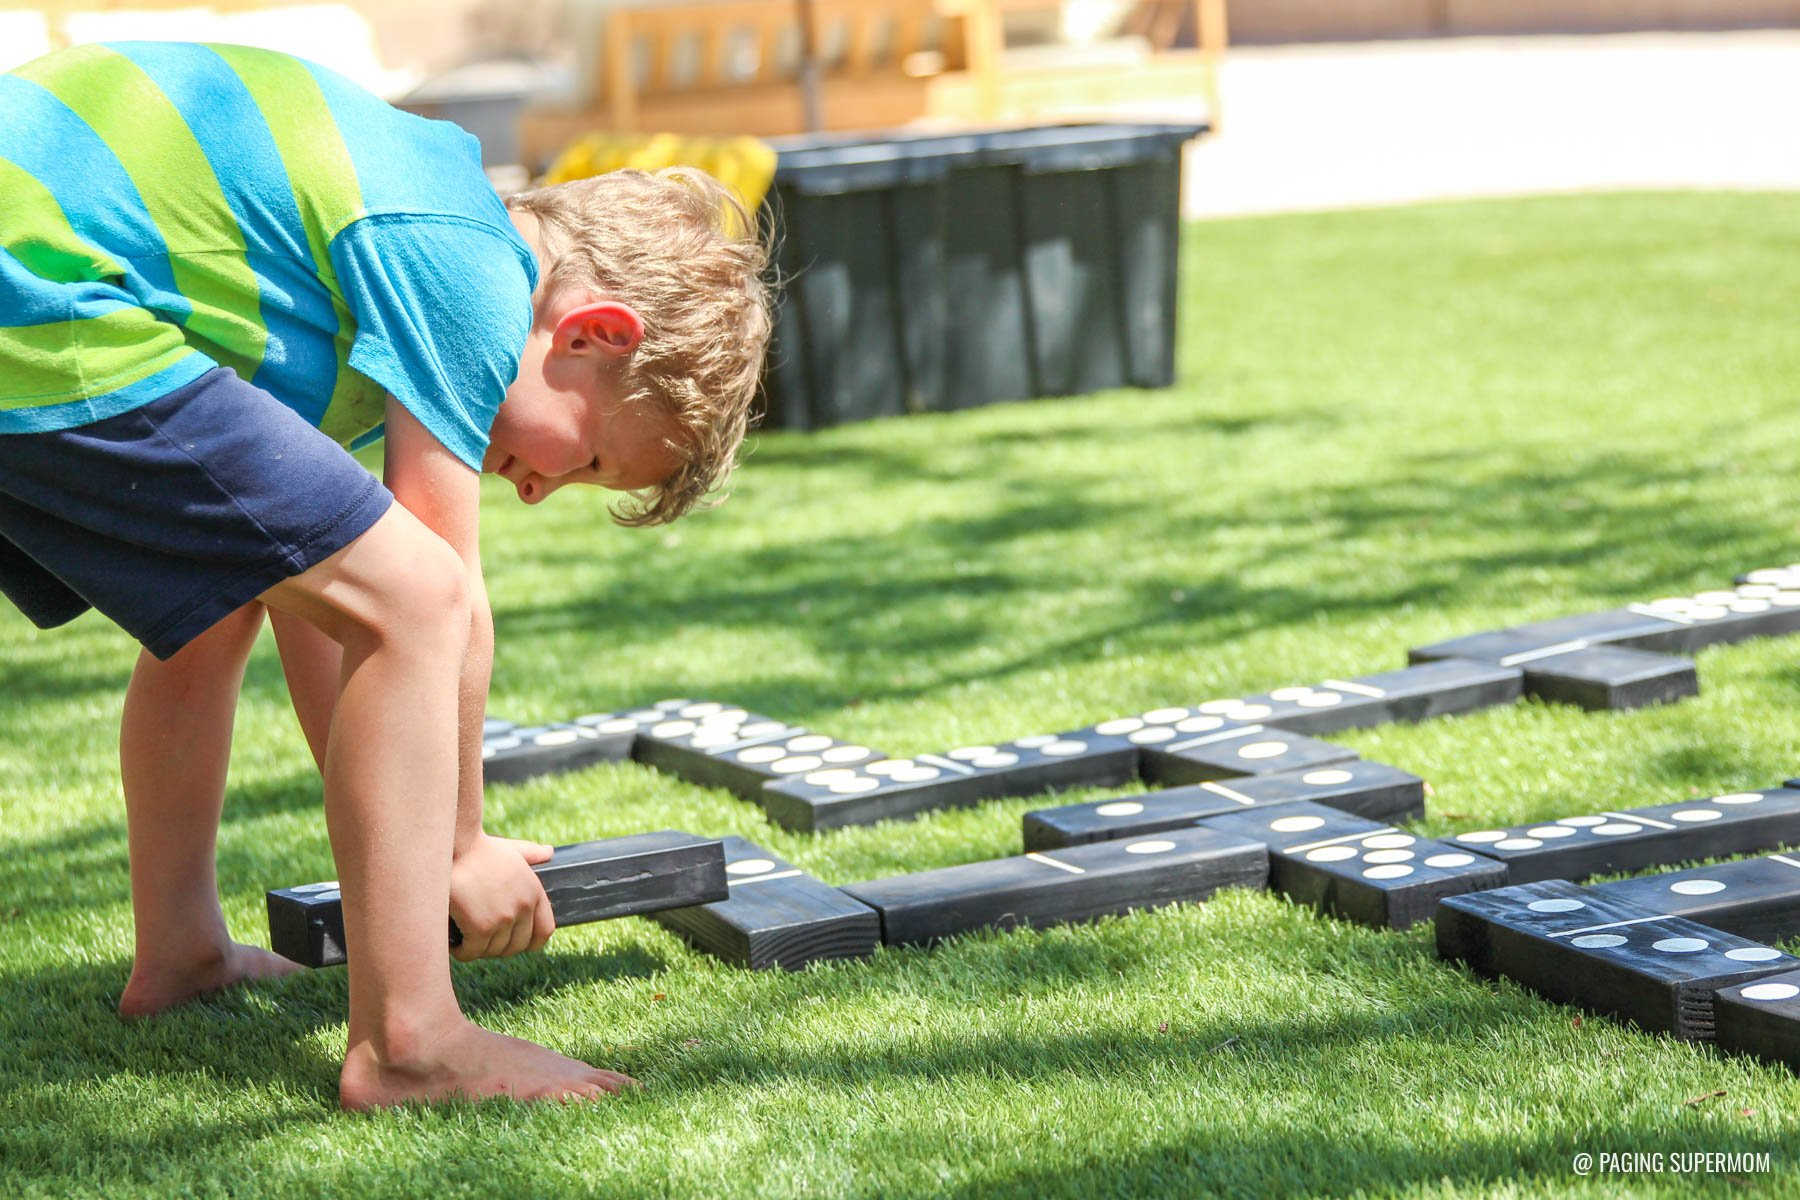 Backyard games how to make yard dominoes ring toss giant jenga playing backyard dominoes diy backyard games plans from homedepot via pagingsupermom solutioingenieria Image collections